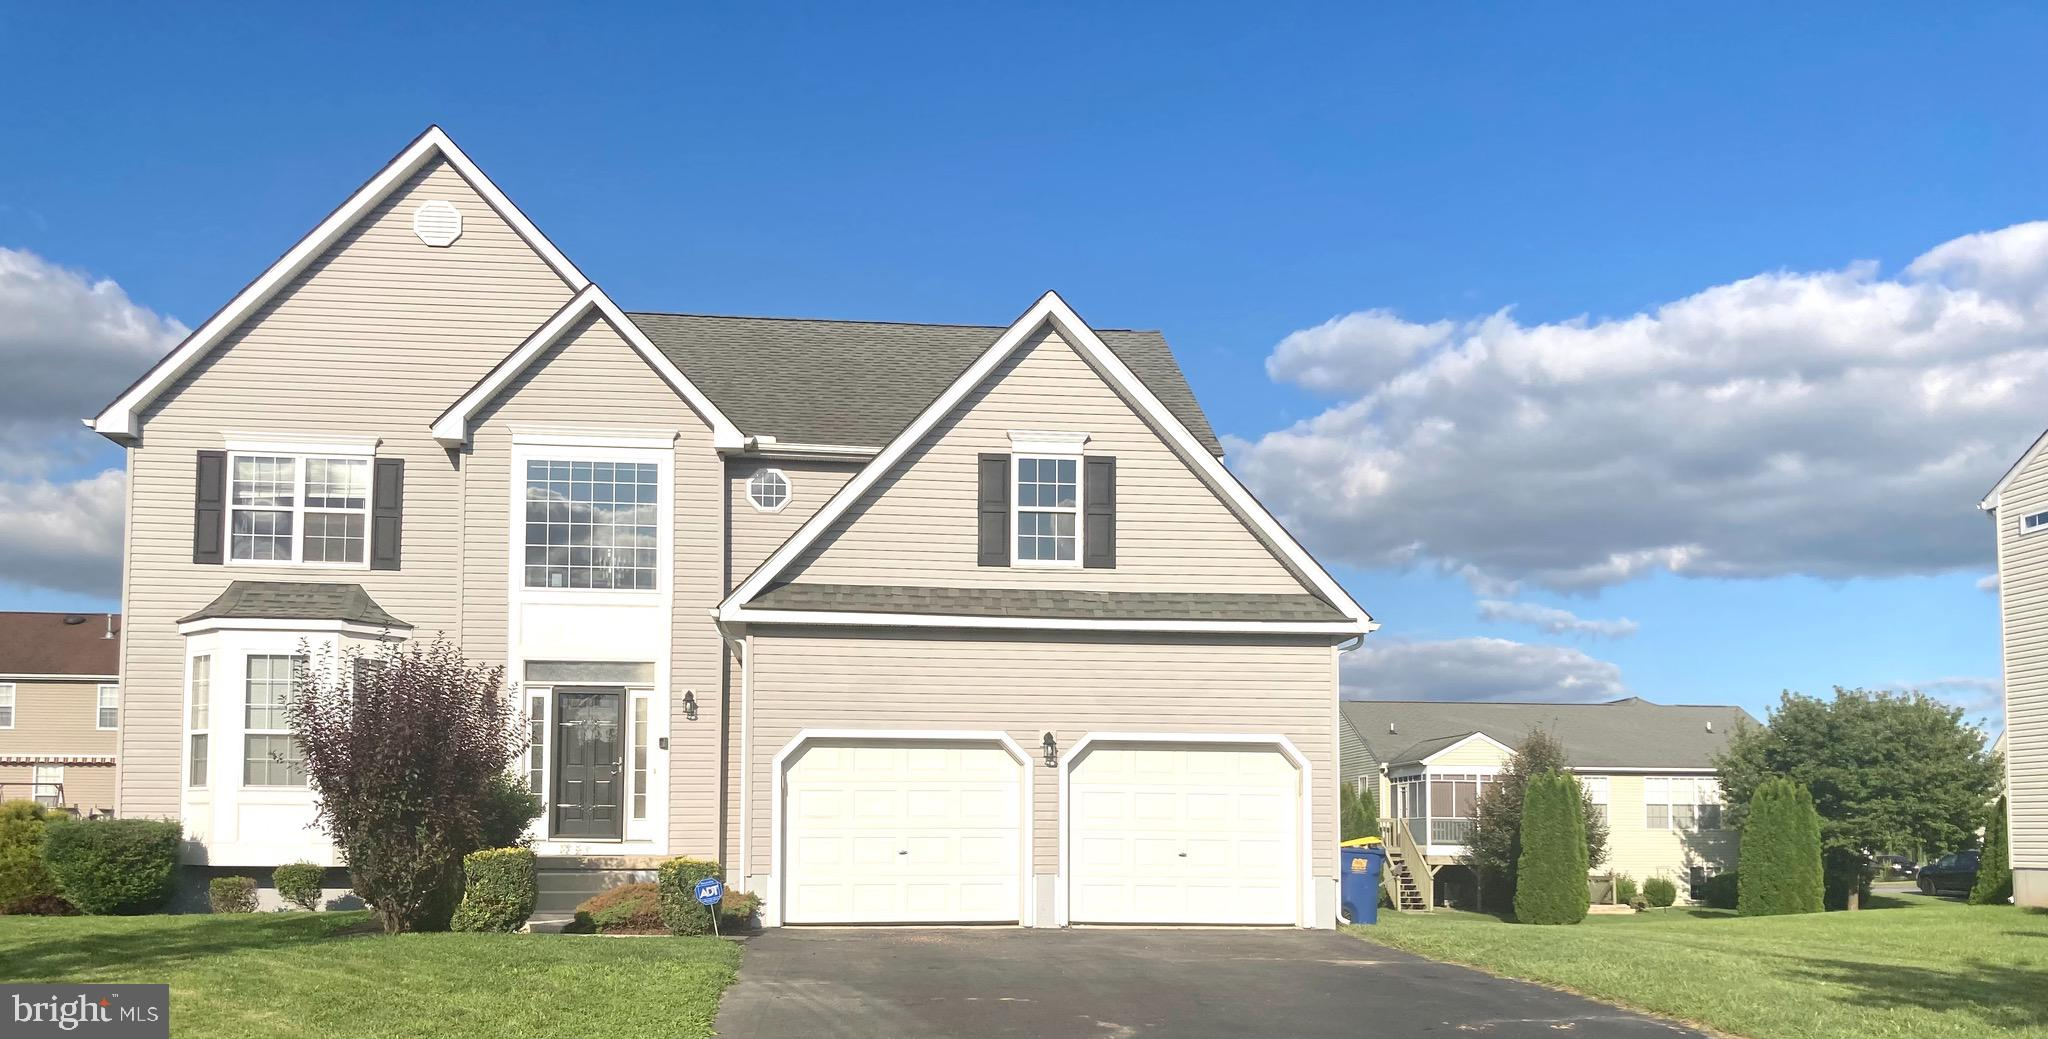 Massive 5 bedroom 3 1/2 bath located in the desirable community, Pinehurst Village. All new carpet and paint throughout!  A must see upon entry you're greeted by the grand, two-story foyer with new vinyl plank flooring and carpet throughout leading to the beautiful eat-in kitchen equipped with all new appliances. The main floor has a formal dining room and sitting room and a cozy fireplace in the main living area. Upstairs you'll find the large master bedroom with 2 huge walk-in closets in the master bathroom you will find a dual vanity, standing shower, and giant soaking tub with plenty of natural light. Also upstairs are another 3 spacious bedrooms, full bath, and massive upstairs laundry room. Continuing to the finished basement you'll find everything you'll need to entertain which includes a full bar with countertop and sink another additional bedroom and full bathroom as well as huge living area with a walkout entrance. Over 3500 sqft there's plenty of room for everyone. Only a few minutes away from route 1, Dover Air Force Base, shopping, local restaurants, and more! Schedule your showing today. Realtor has financial interest in property.